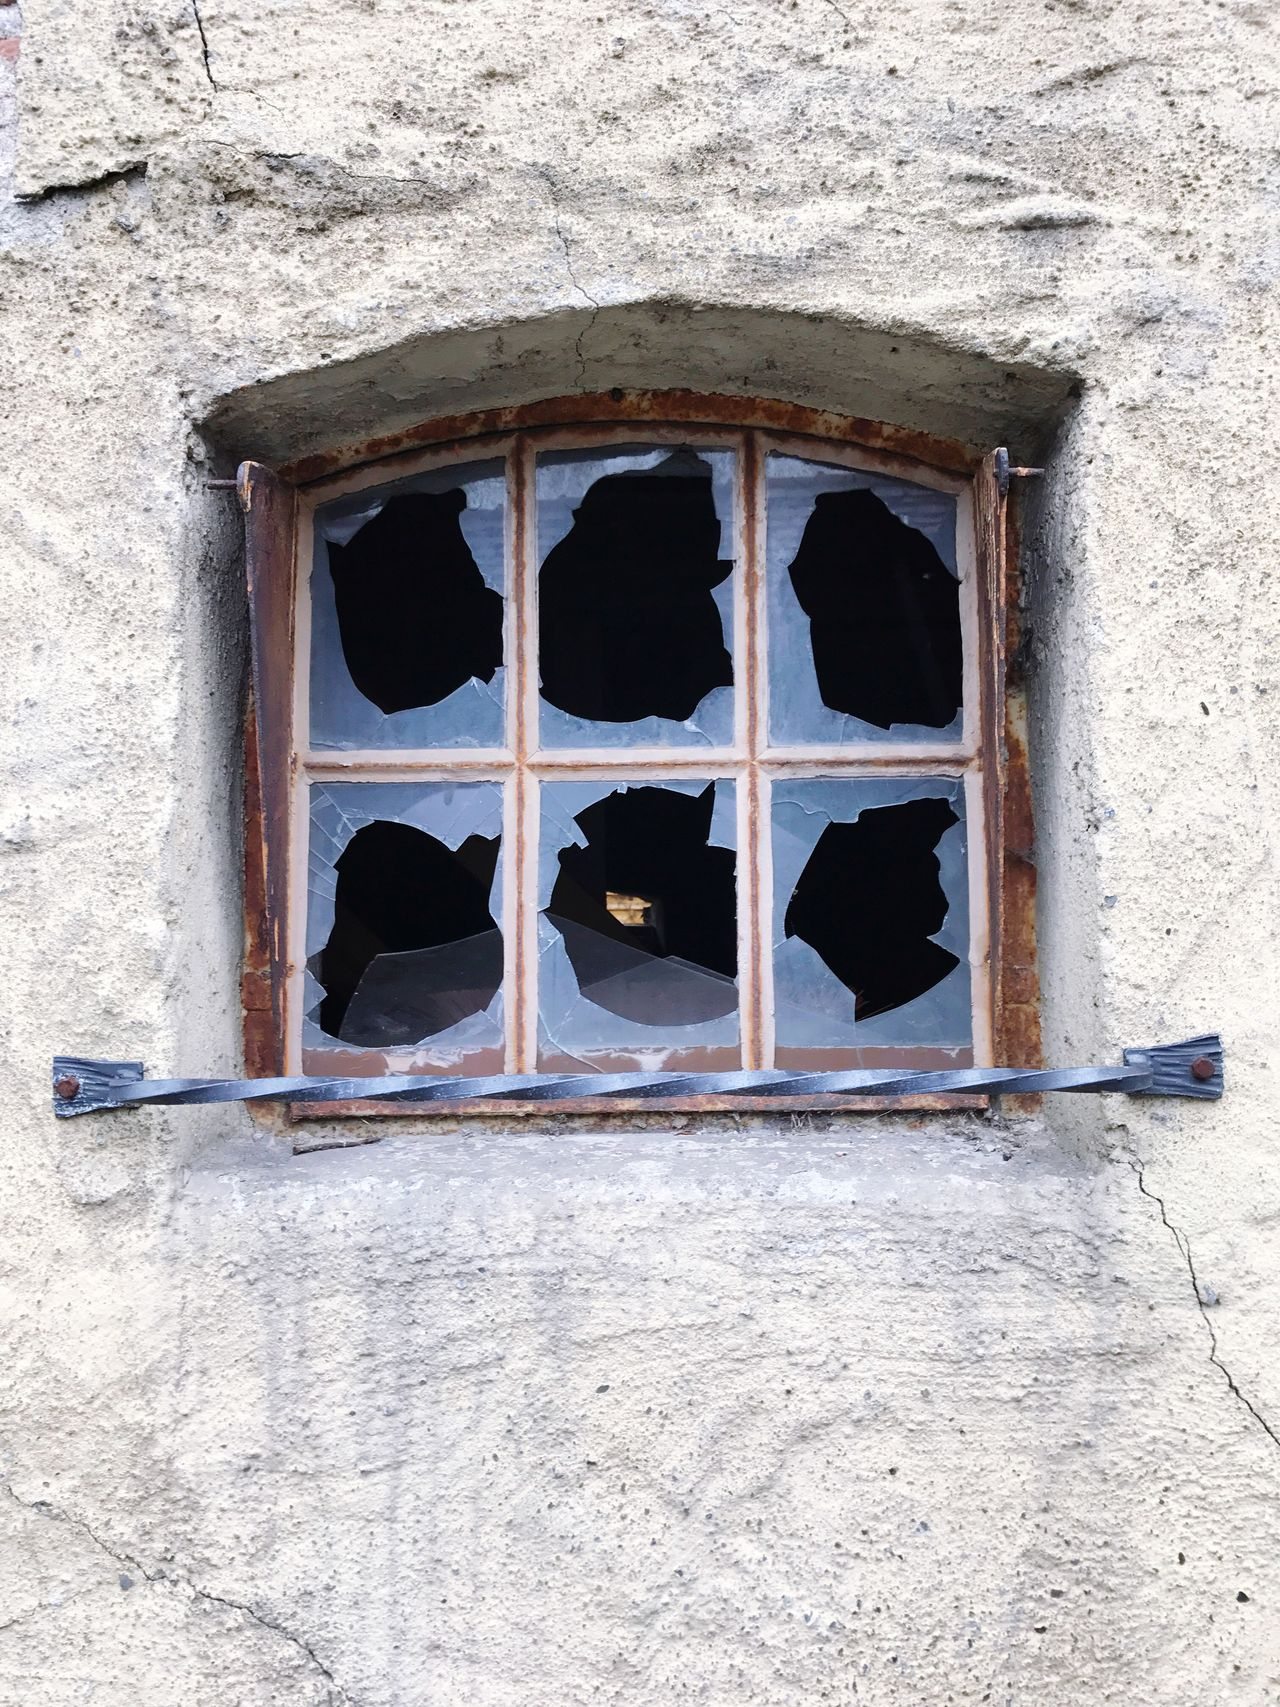 Window Architecture Built Structure Building Exterior Day No People Window Sill Low Angle View Outdoors Close-up